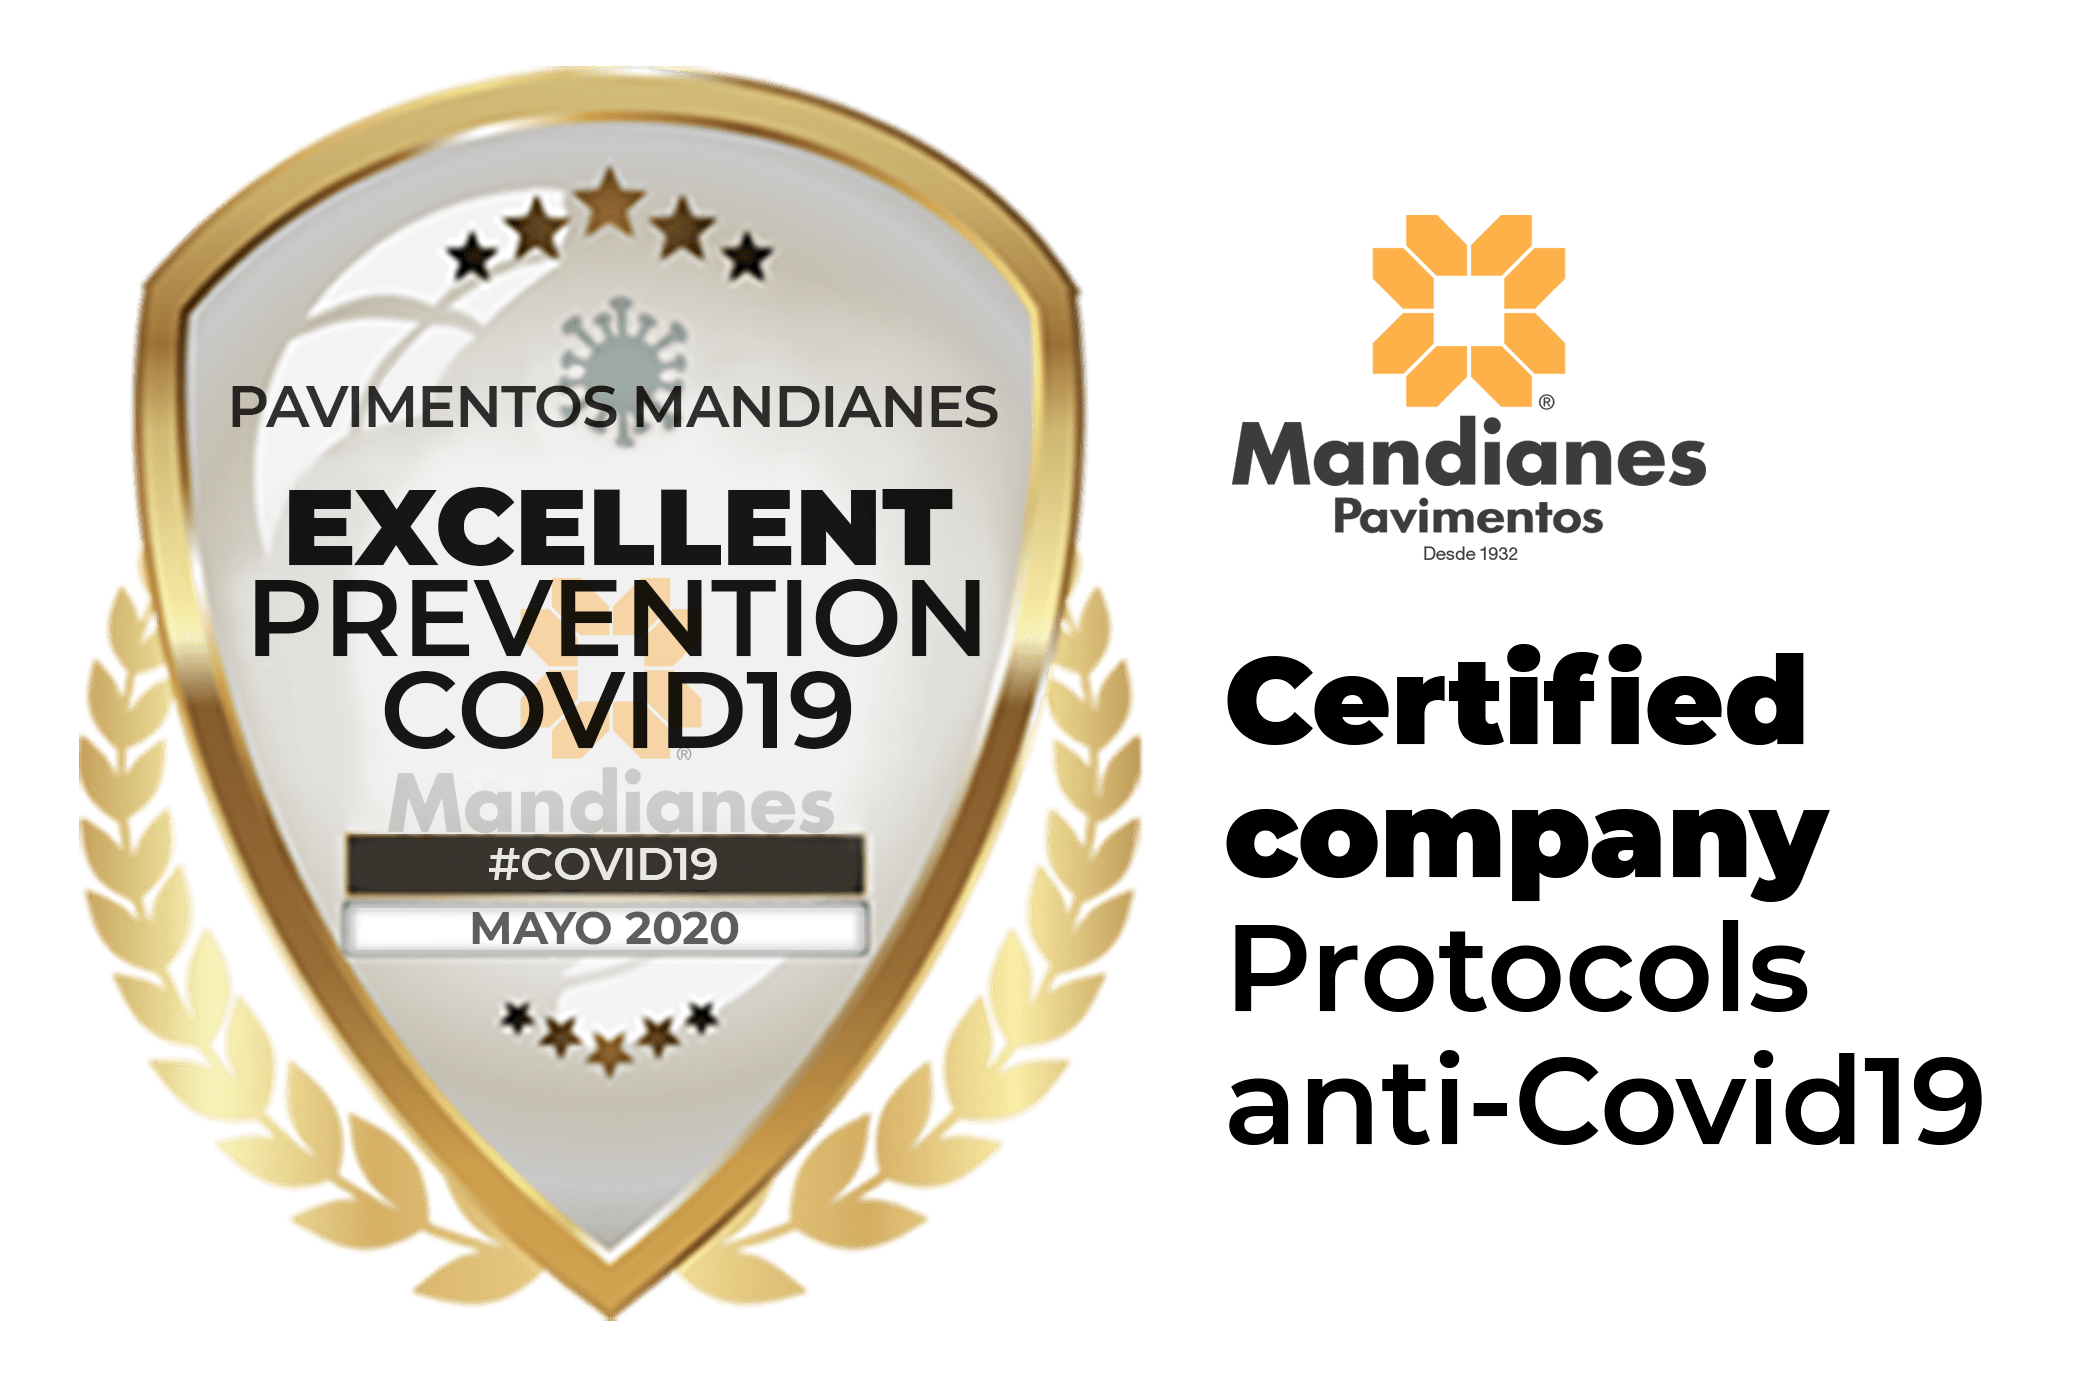 At Pavimentos Mandianes Parquets i Purtes Barcelona, your safety is the most important thing, we comply with more than 20 hygiene measures.